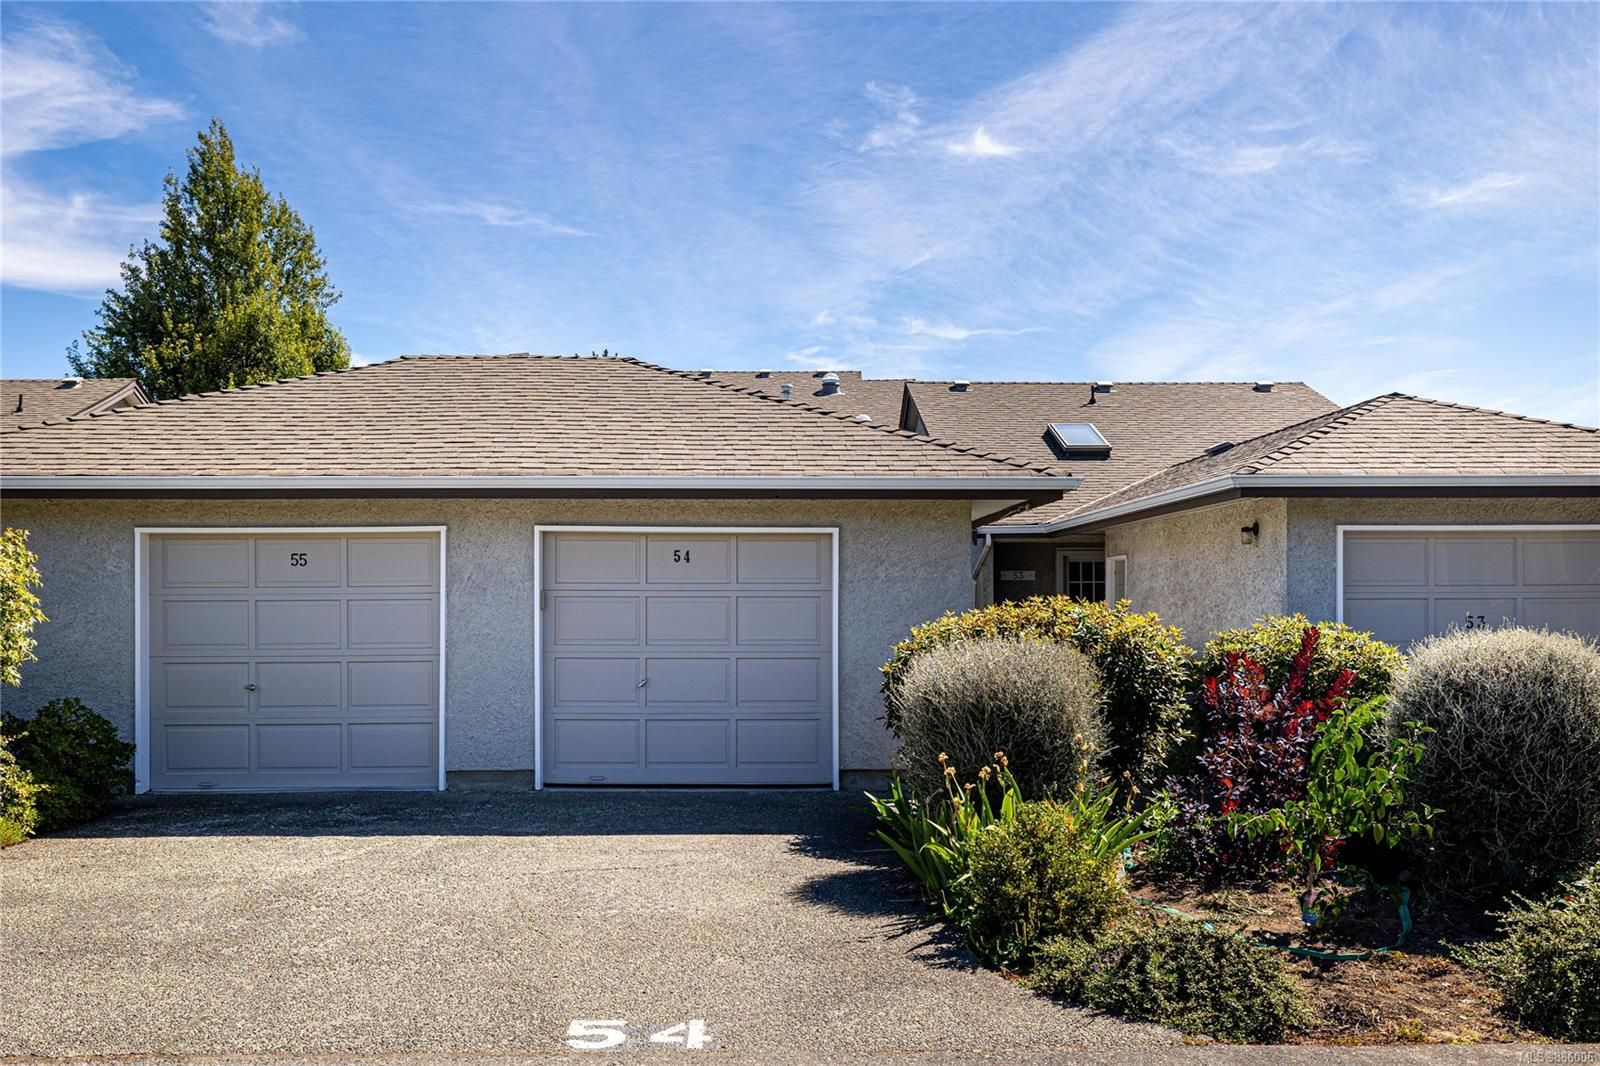 Townhome with detached garage plus extra parking spot in front of the garage and....